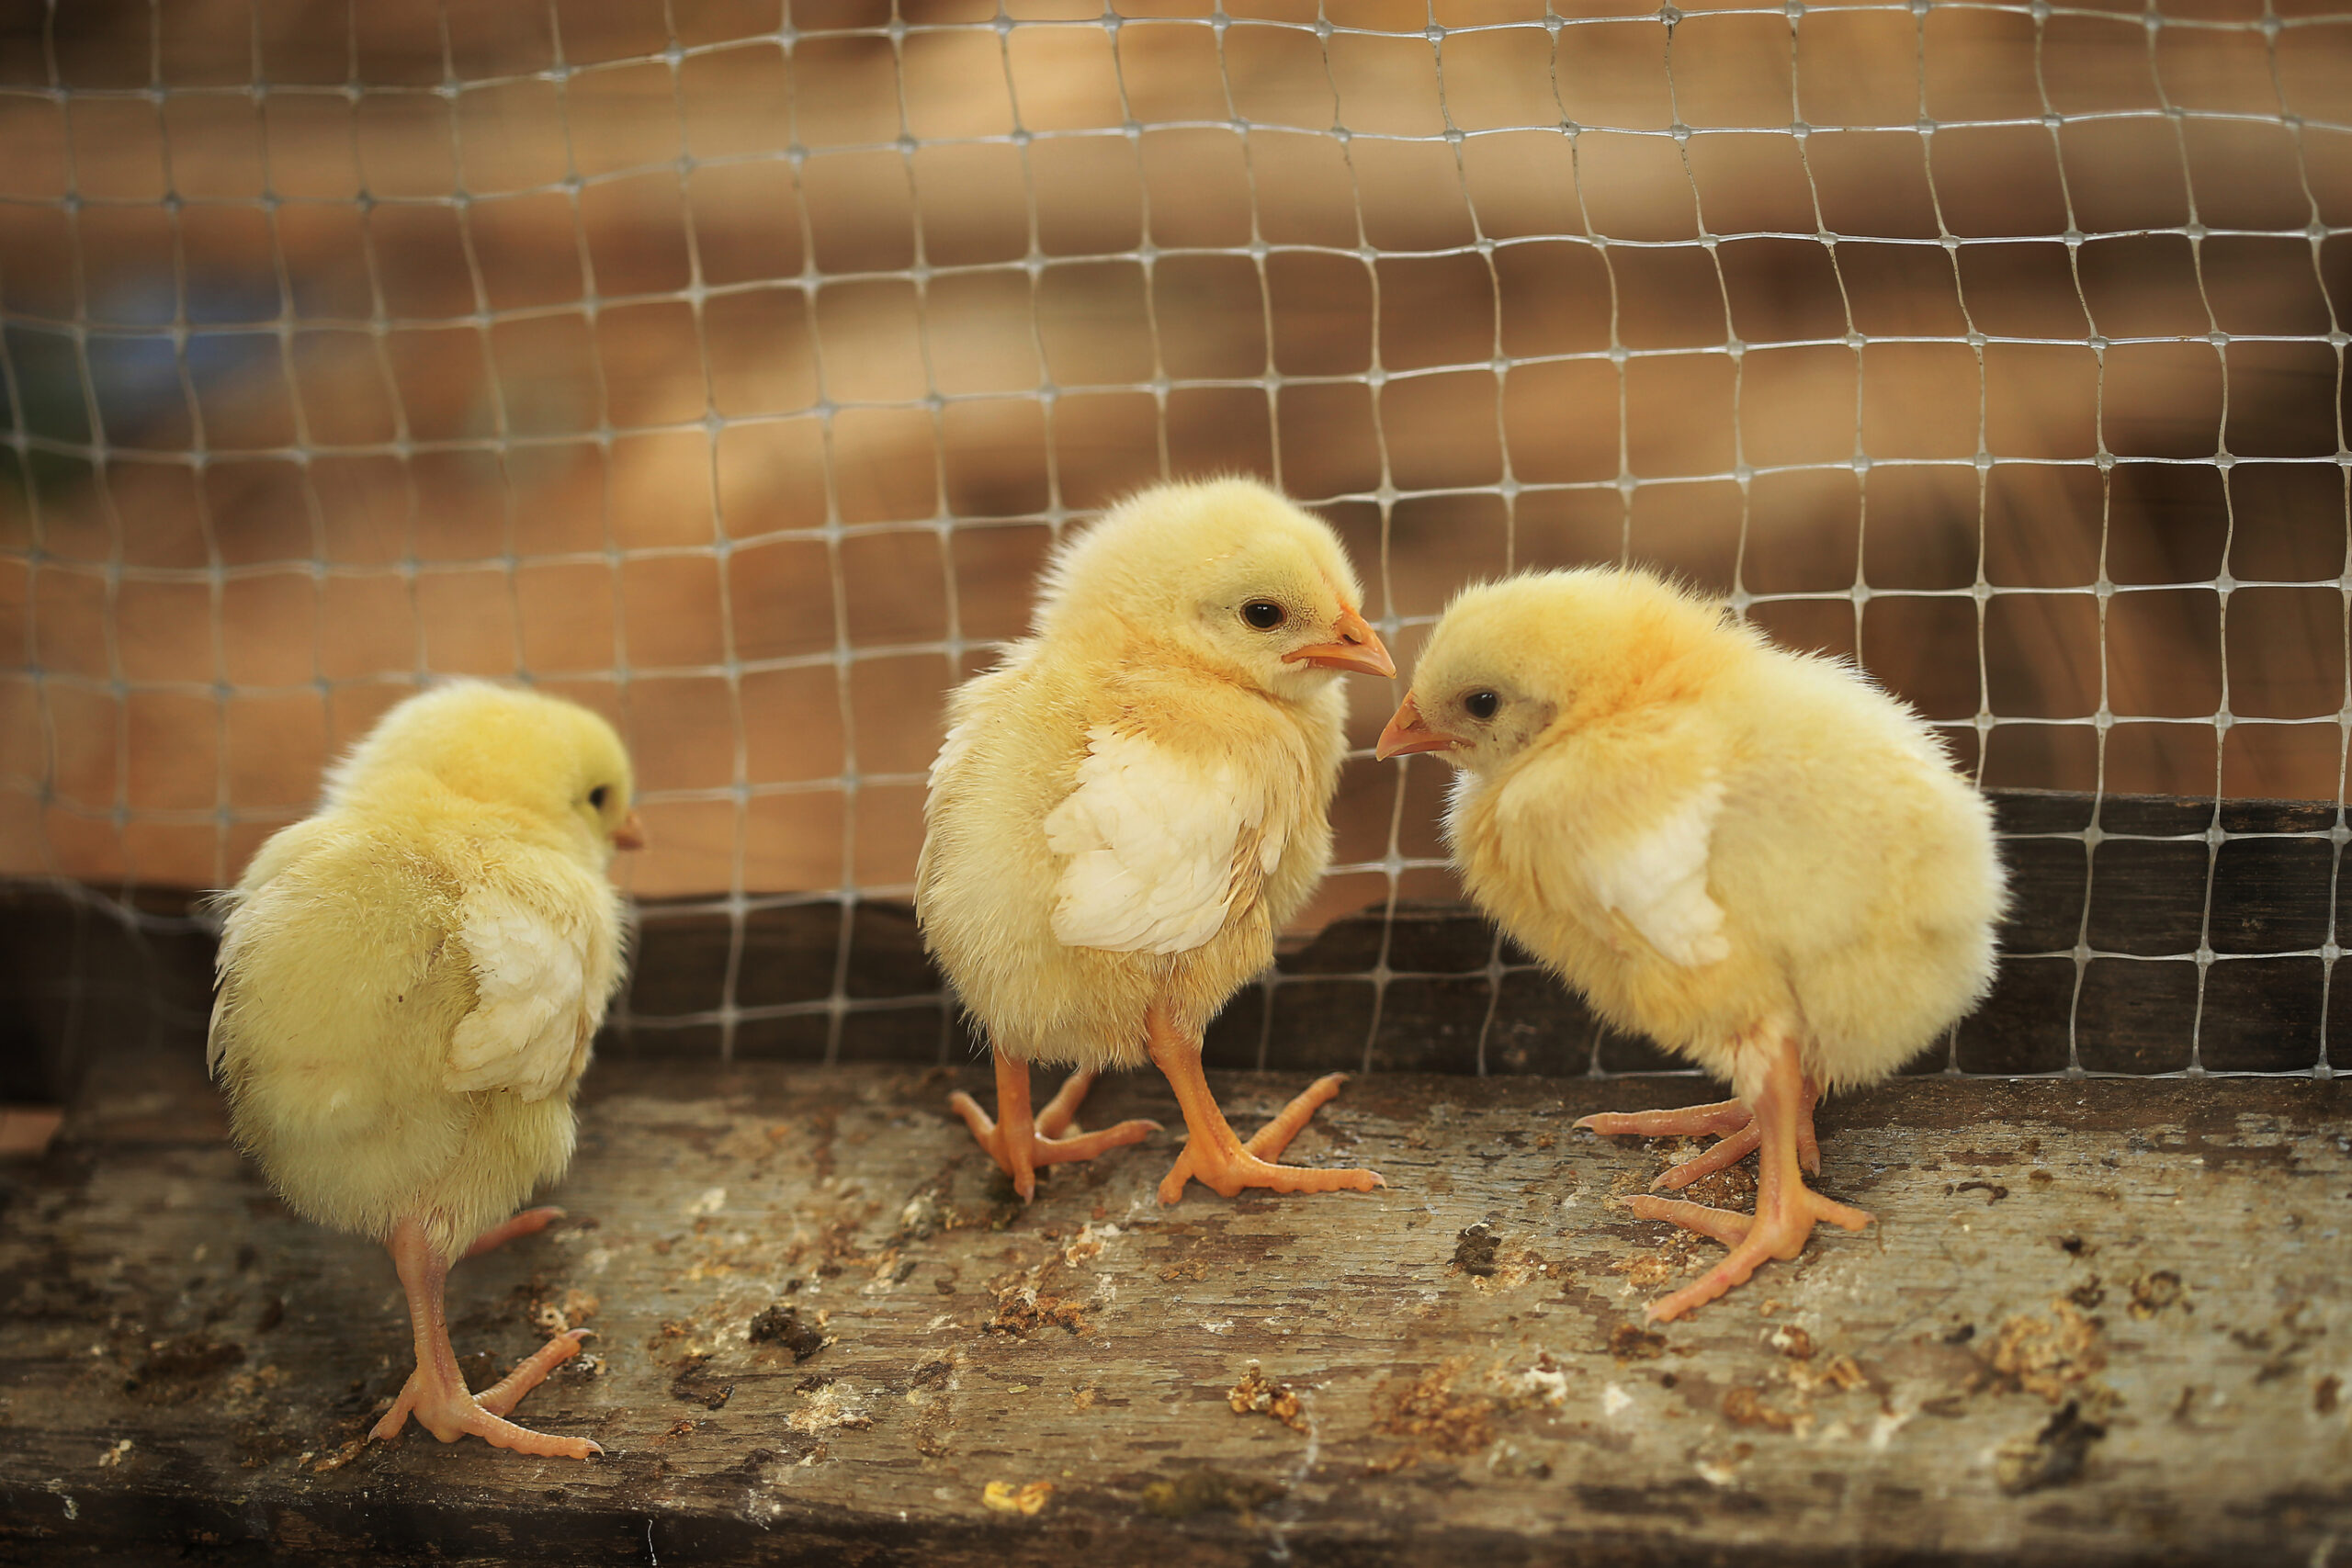 chicks in a coop